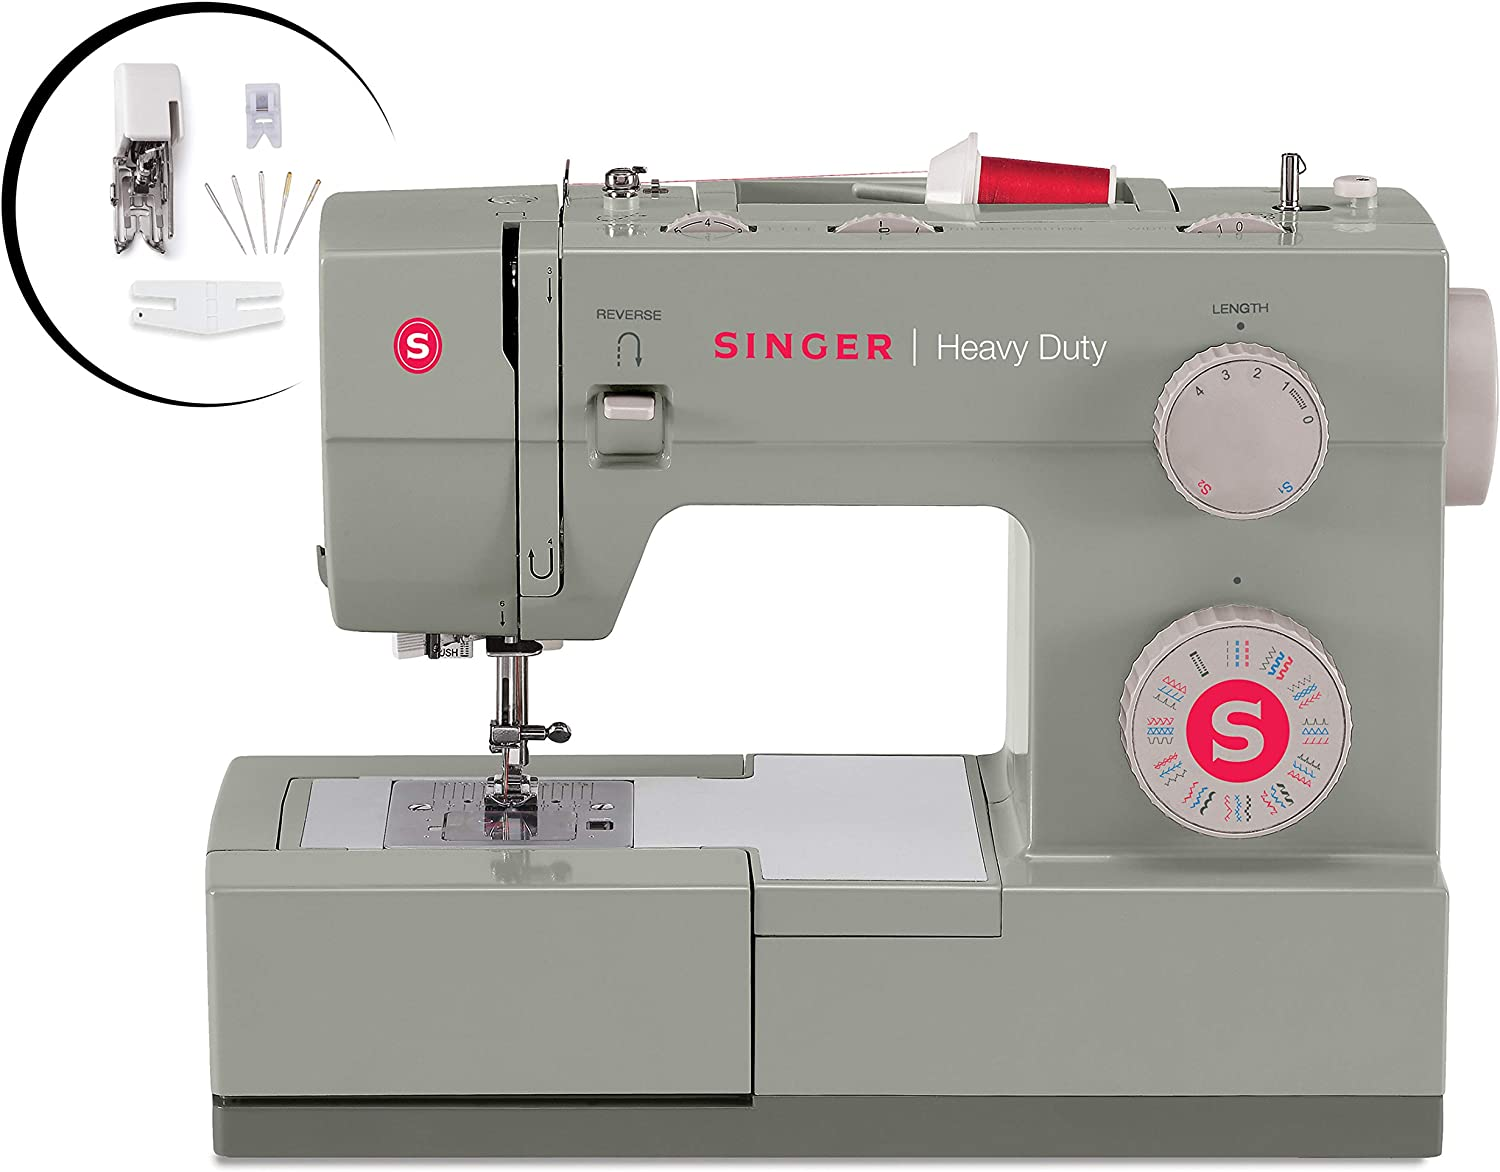 Singer Heavy Duty 4452 Sewing Machine With Accessories, 32 Built-In Stitches, 60% Stronger Motor, Stainless Steel Bedplate